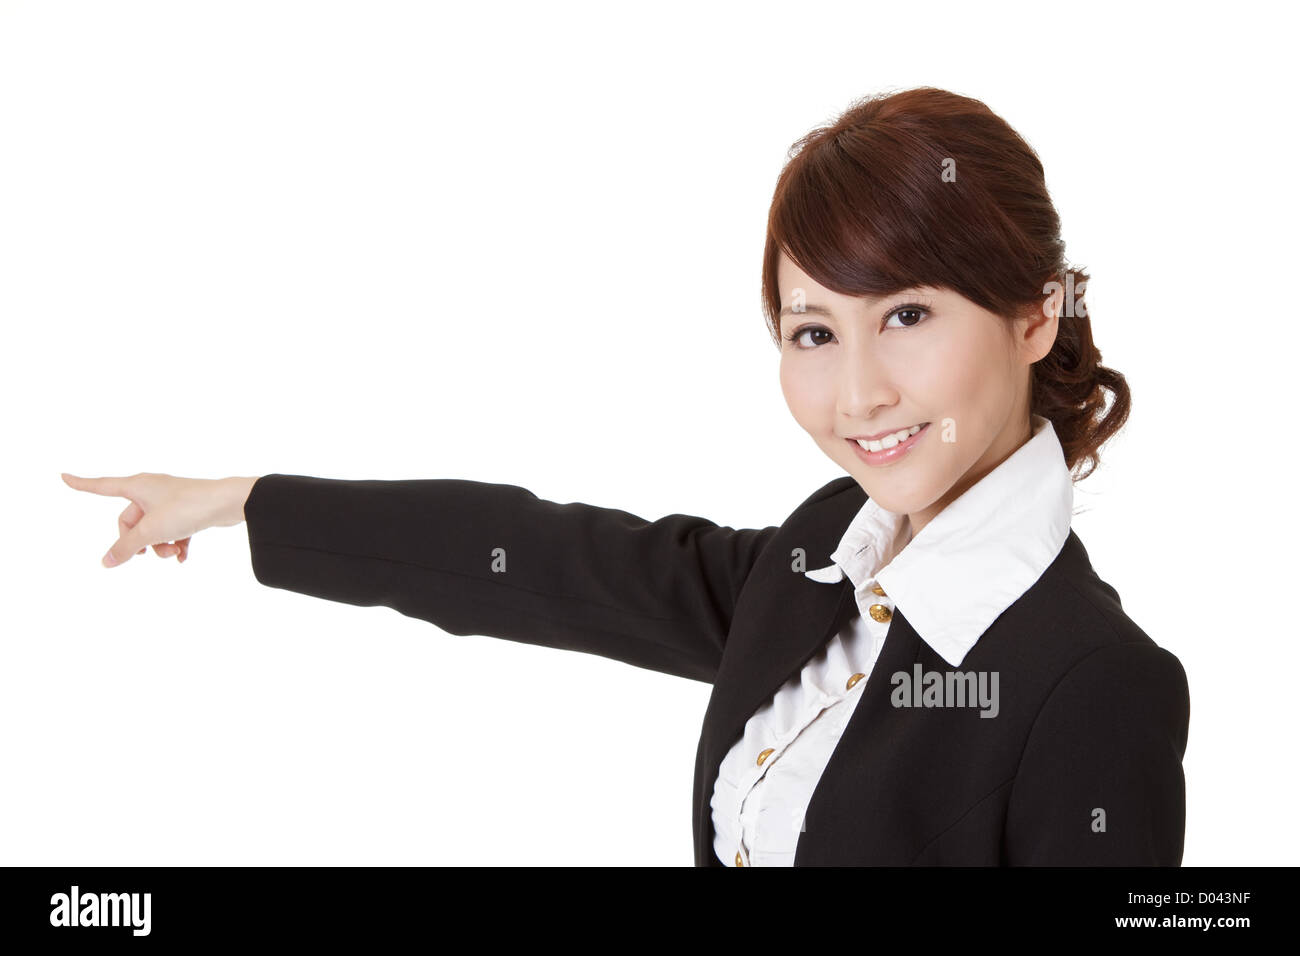 Smiling business woman presenting and looking at you, half length closeup portrait on white background. - Stock Image